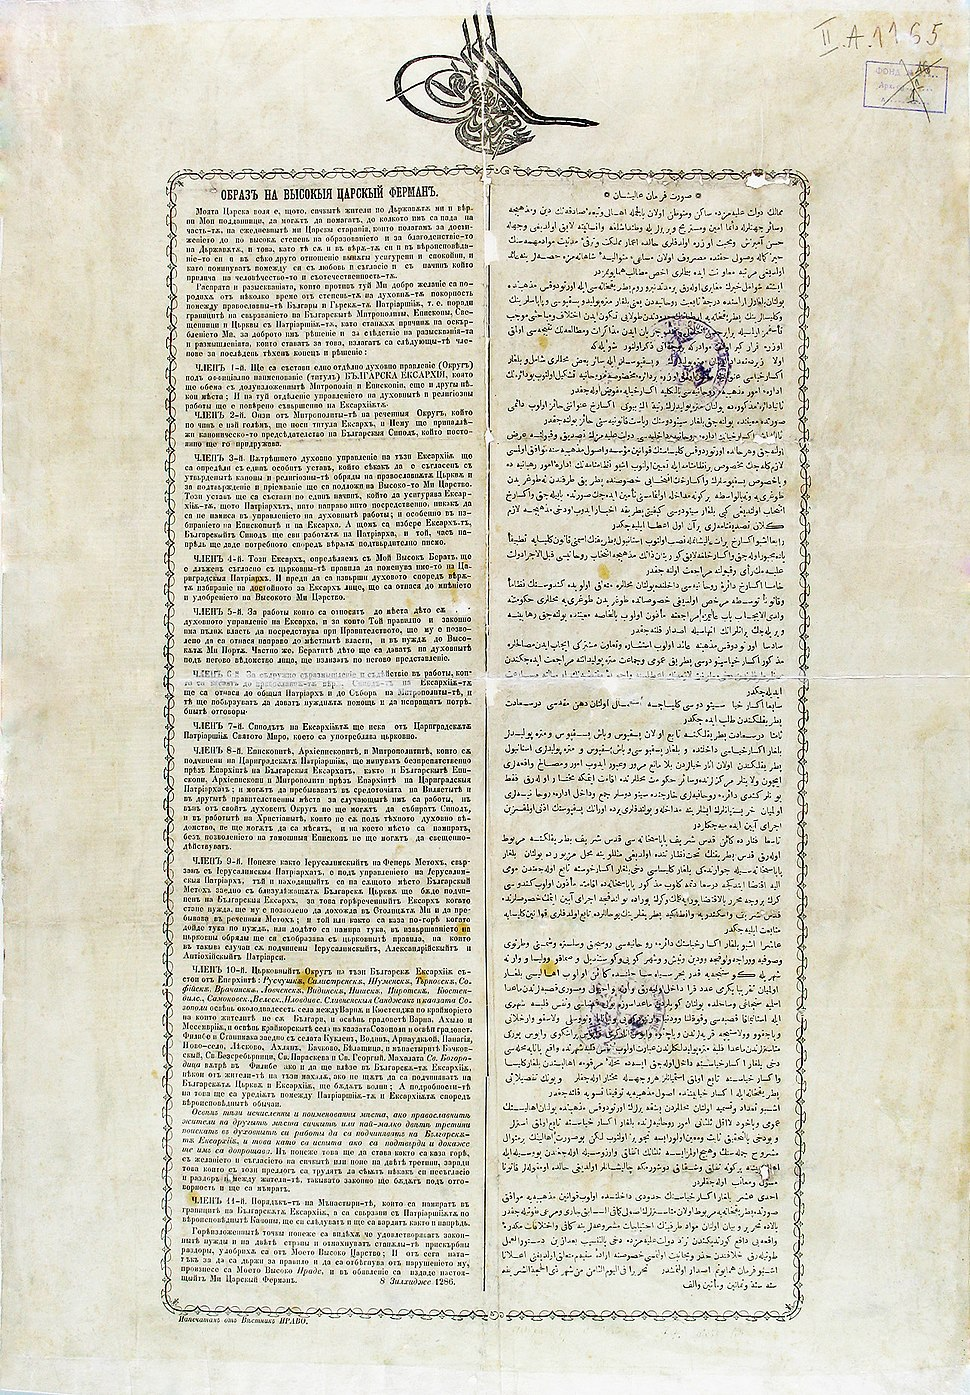 Sultan's Ferman for the establishment of a Bulgarian Exarchate 1